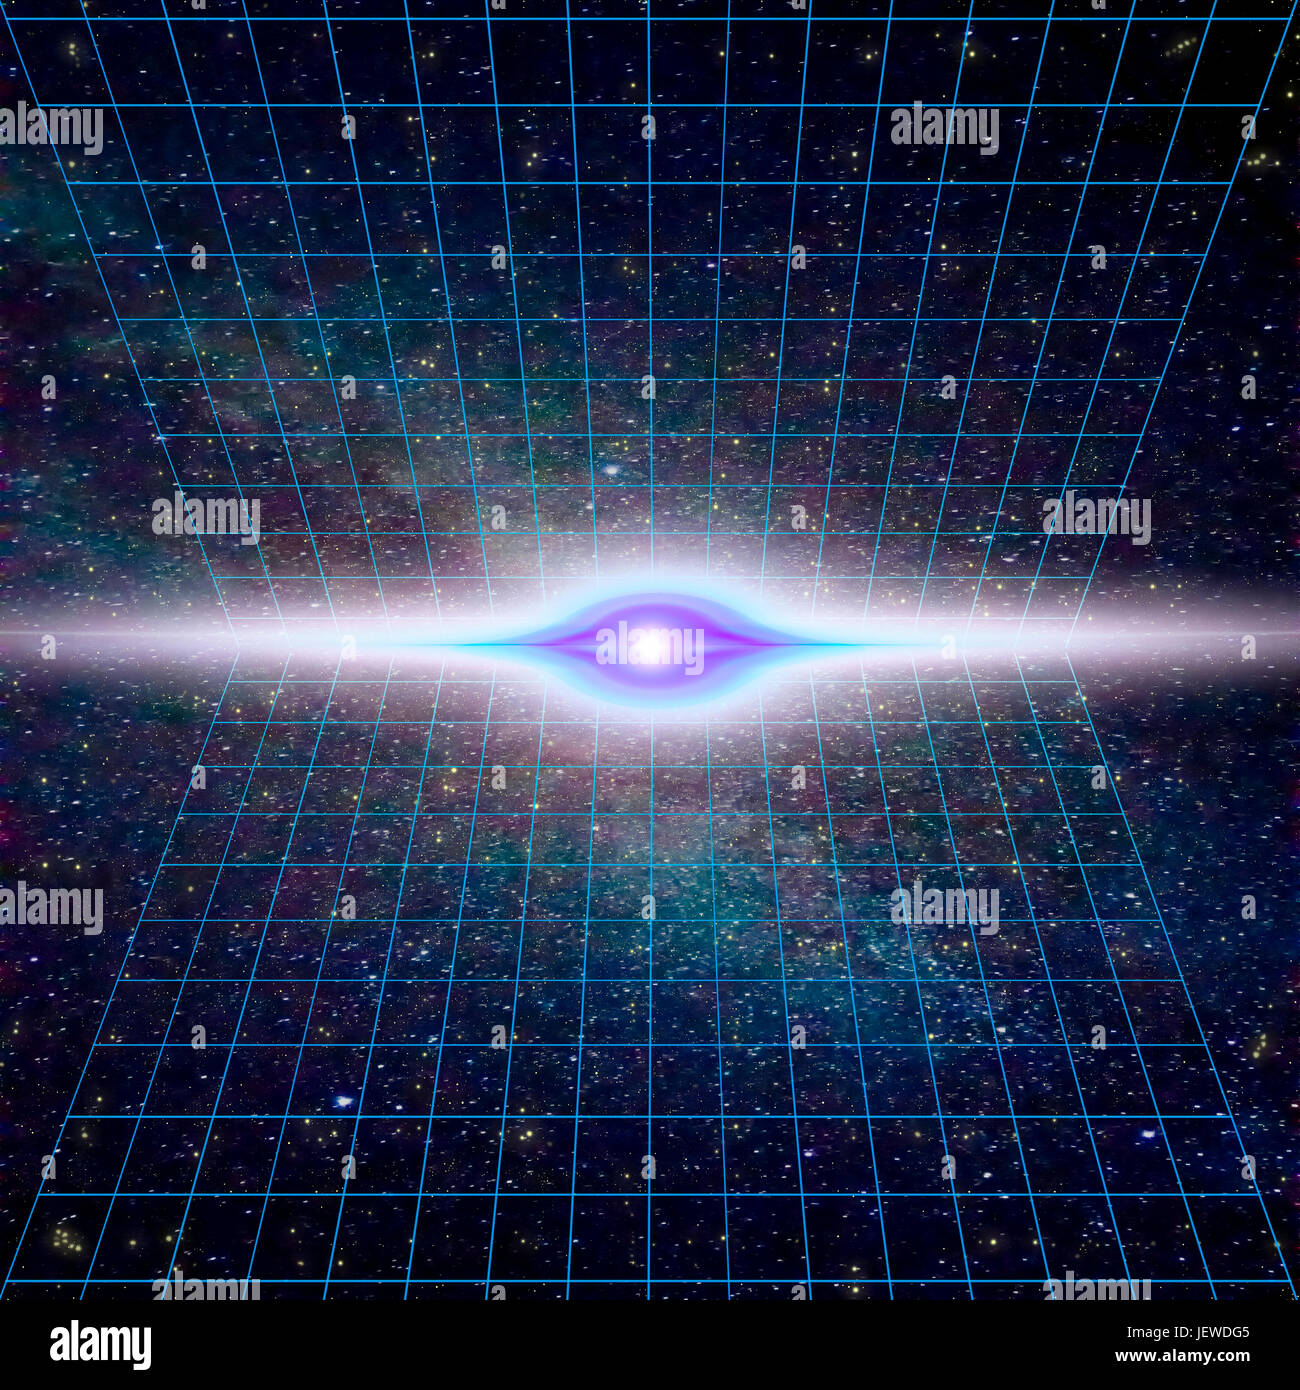 Singularity, gravitational waves and spacetime concept. Time Warp - Time Dilation. Quantum mechanics meets general - Stock Image